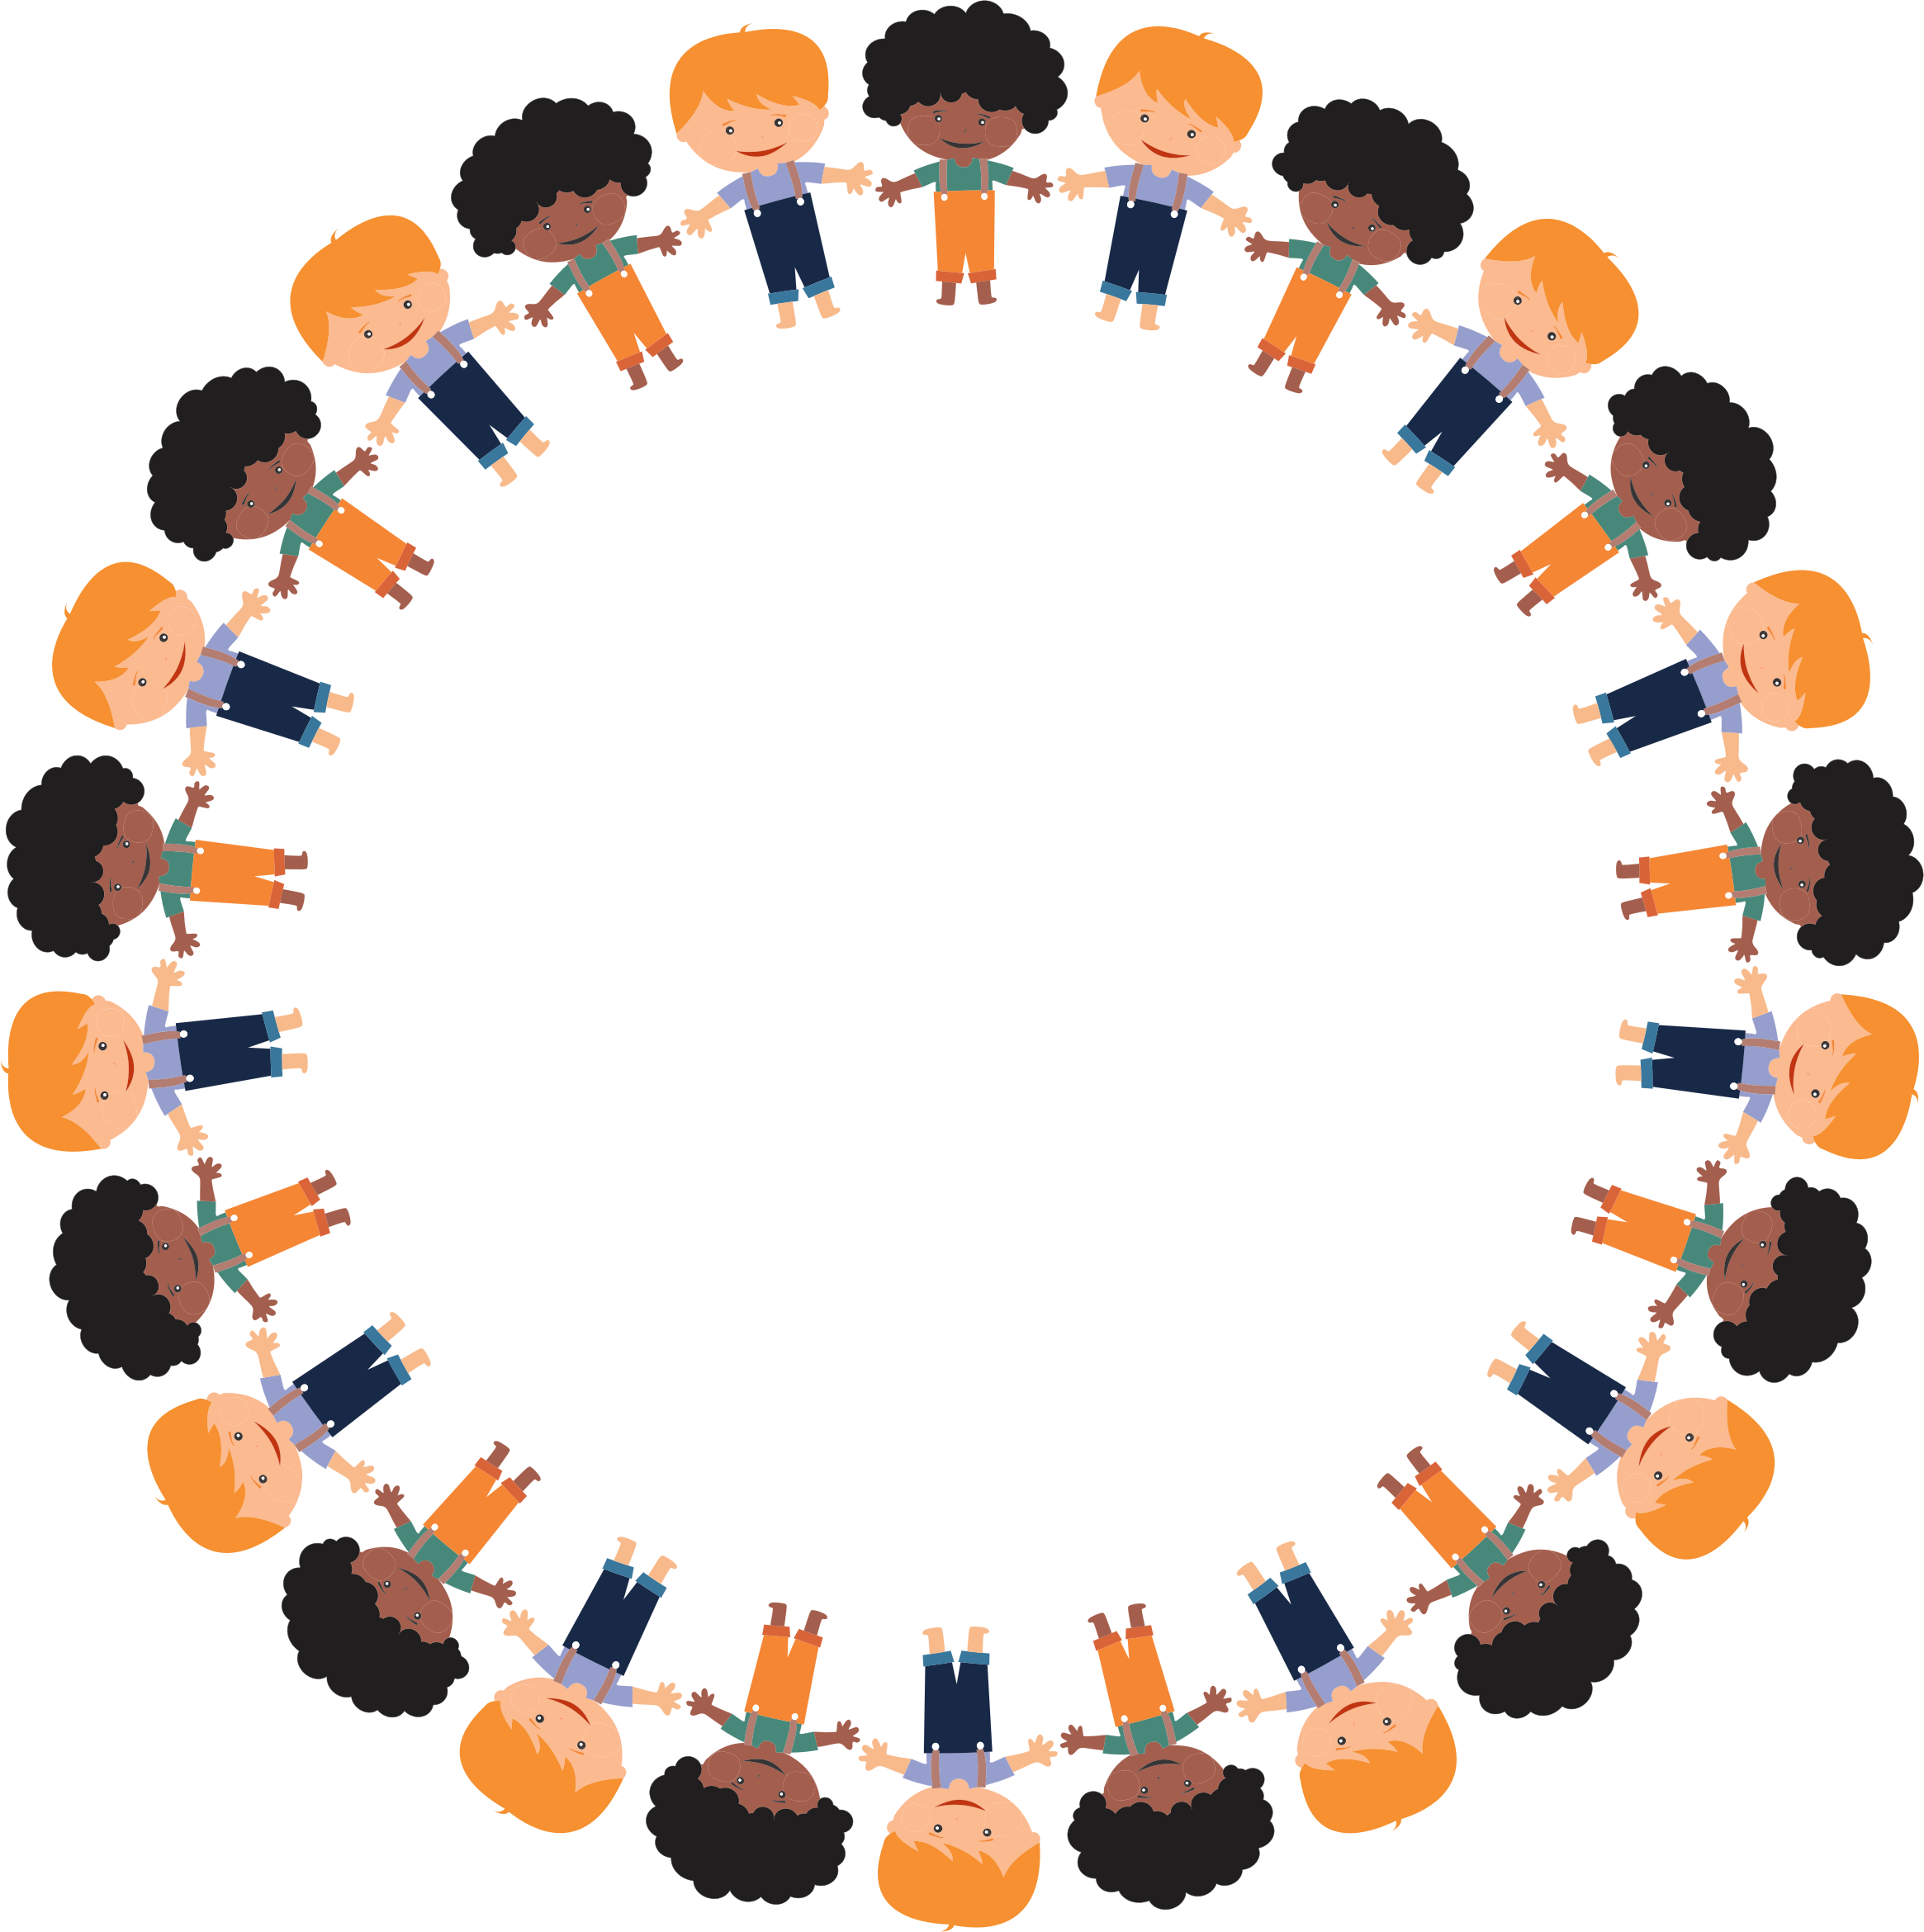 Boys big image png. Circle clipart cartoon